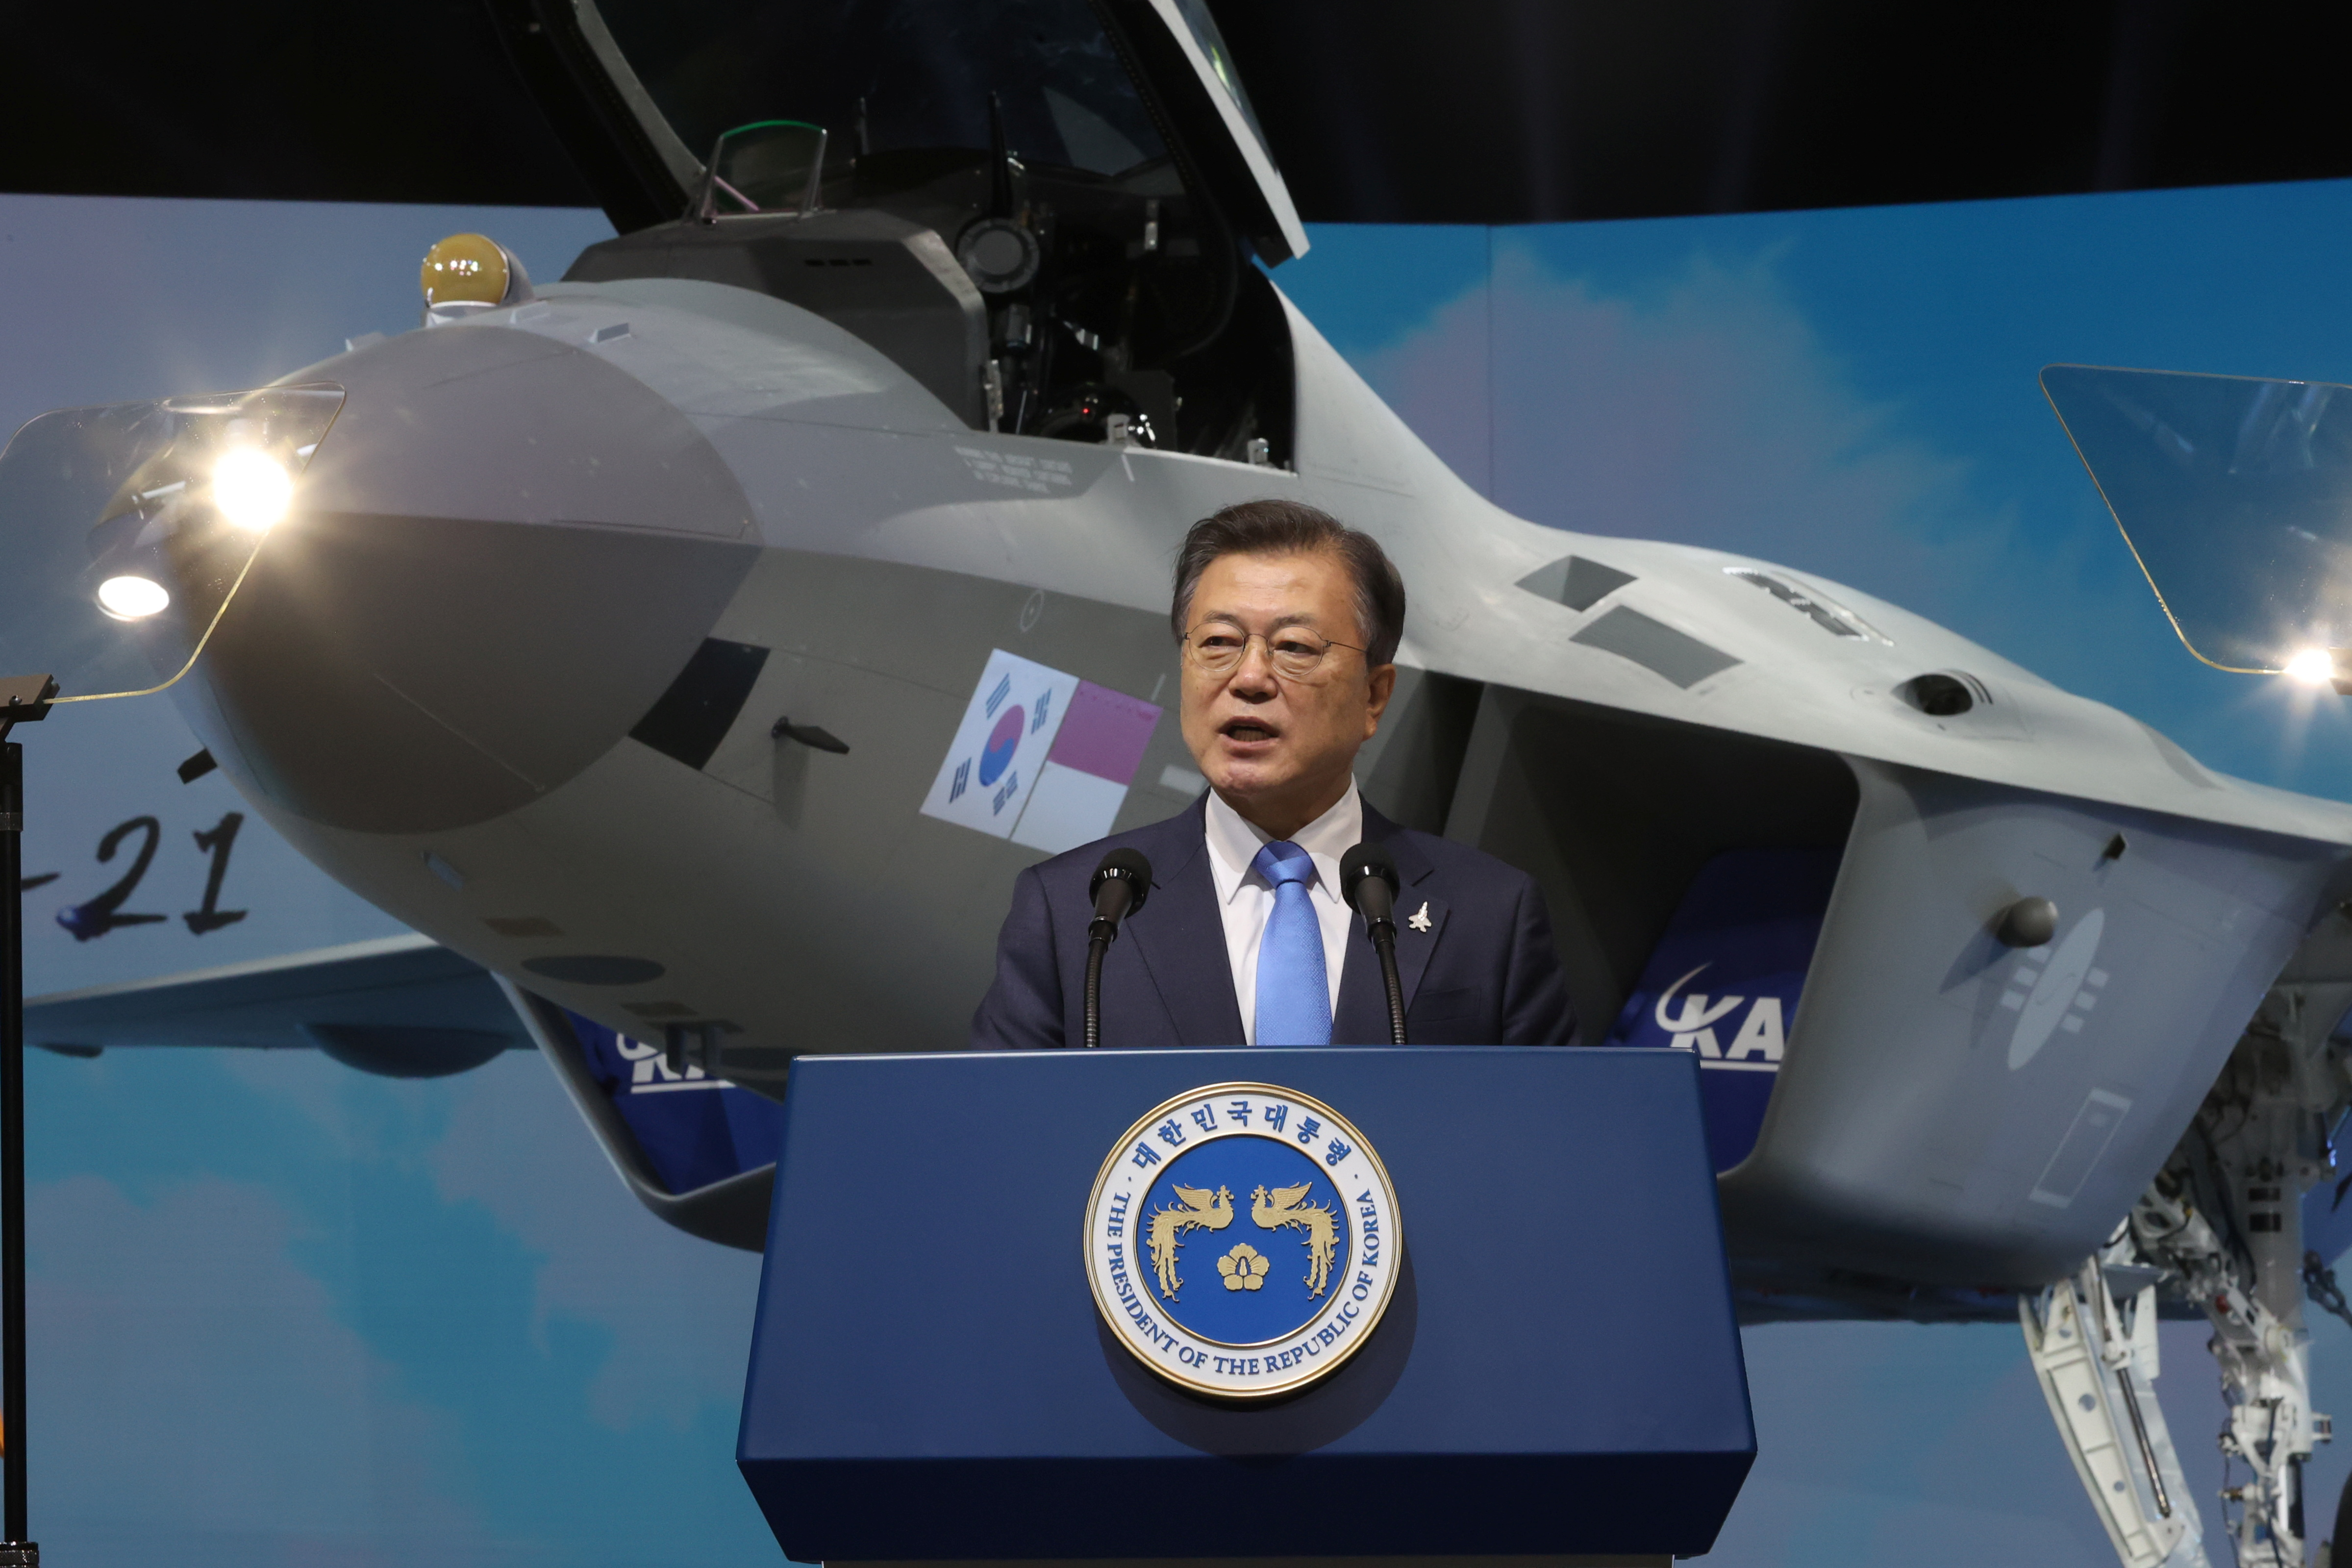 South Korean President Moon Jae-in delivers his speech in front of a prototype of the country's first homegrown fighter jet called KF-21 during its rollout ceremony in Sacheon, South Korea, April 9, 2021.   Yonhap via REUTERS